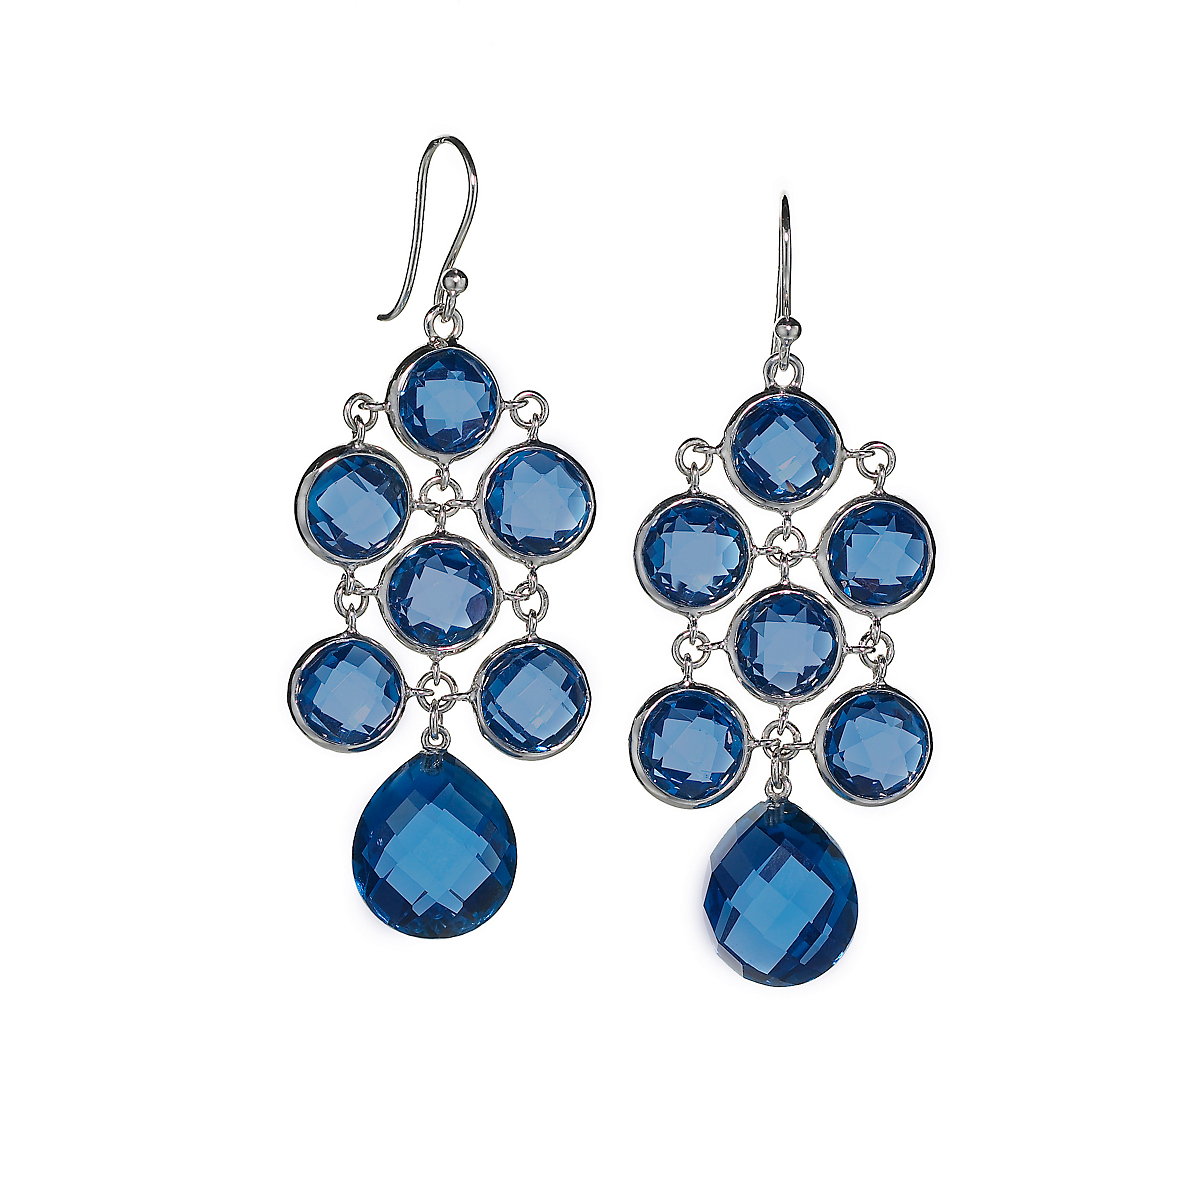 Elizabeth Showers Lab-Created Blue Sapphire Silver Juliette Earrings